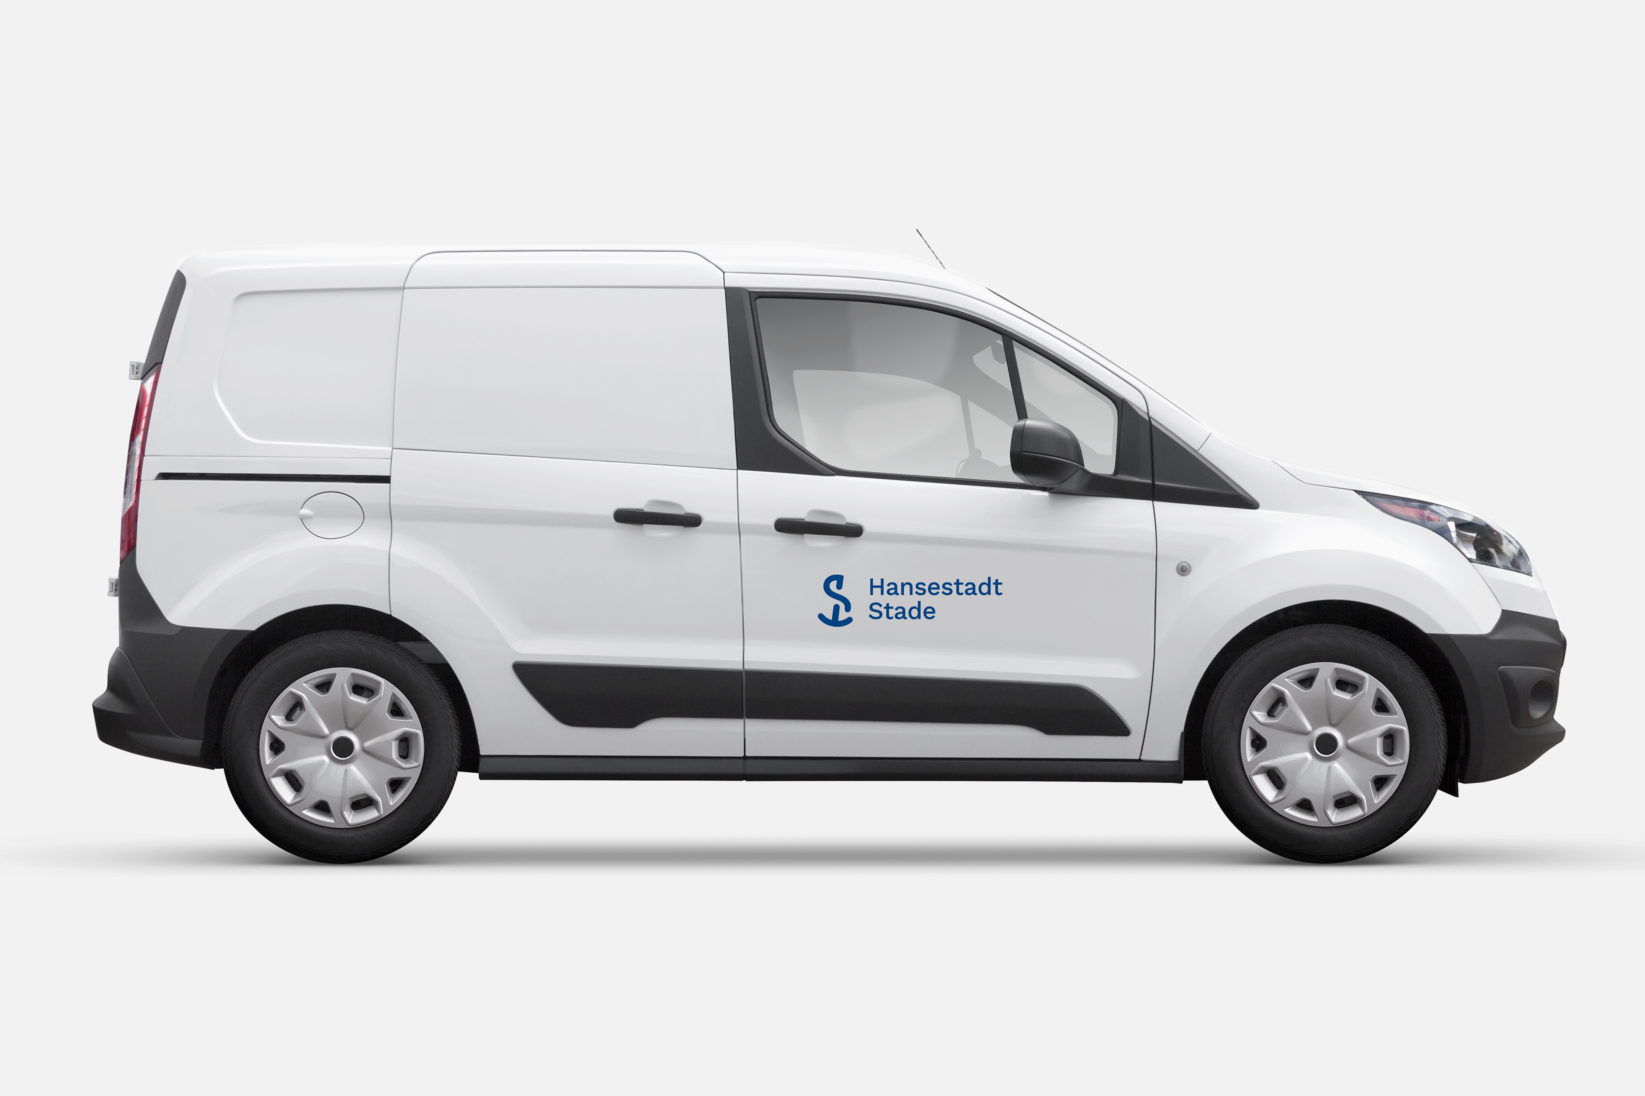 Stade Corporate Design Van